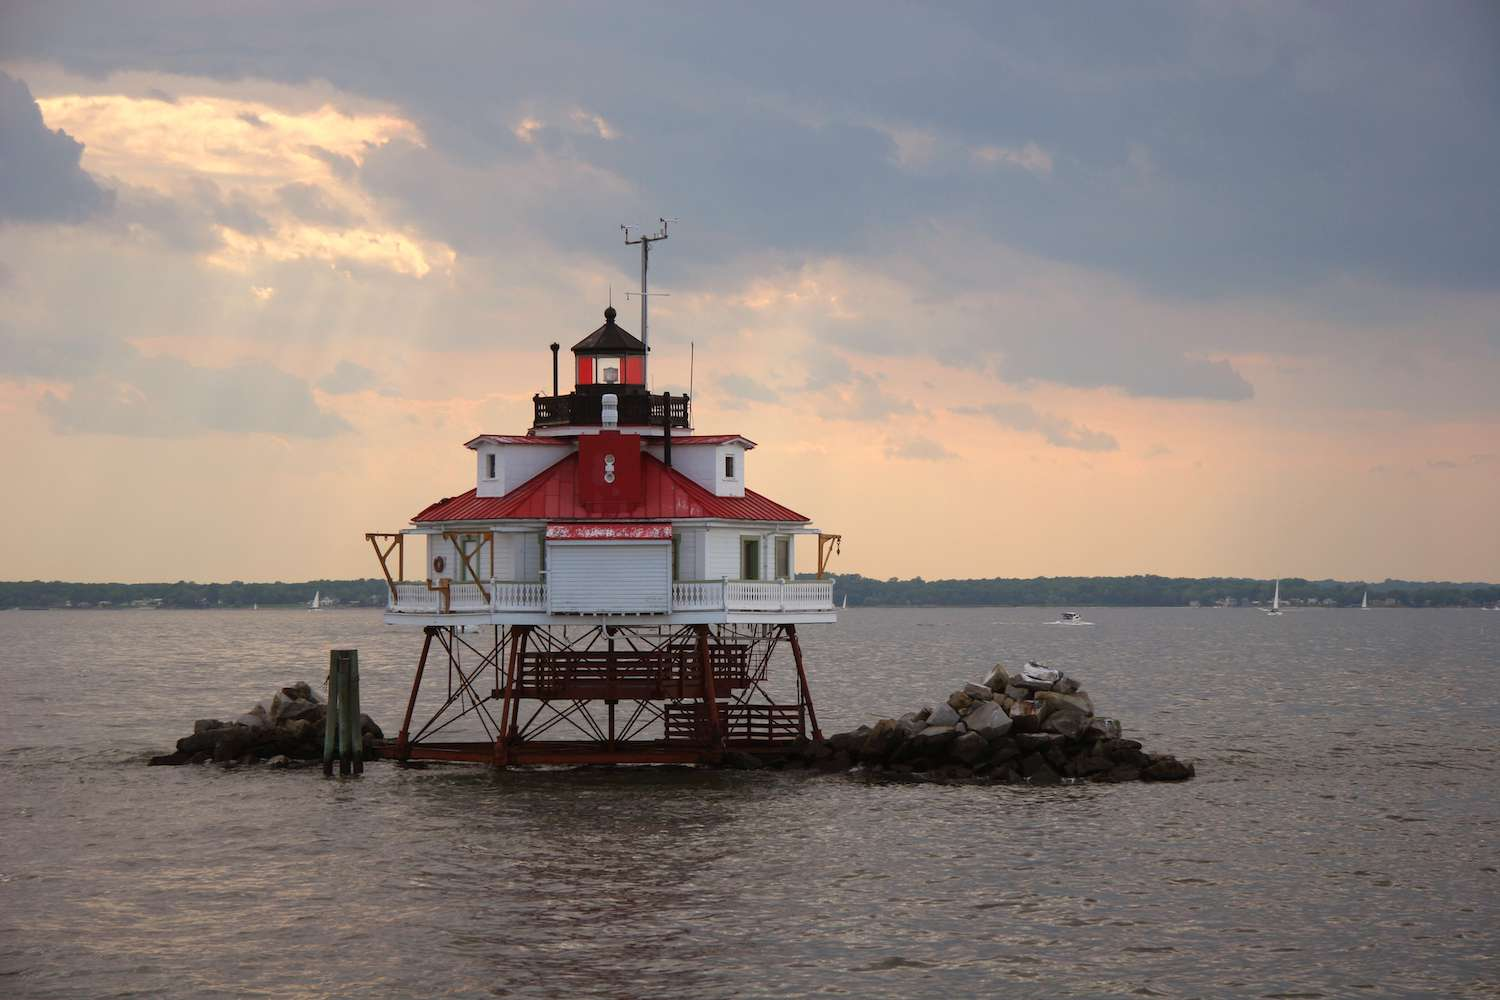 Thomas Point Shoal Light juts out of a tiny islet in the Chesapeake Bay